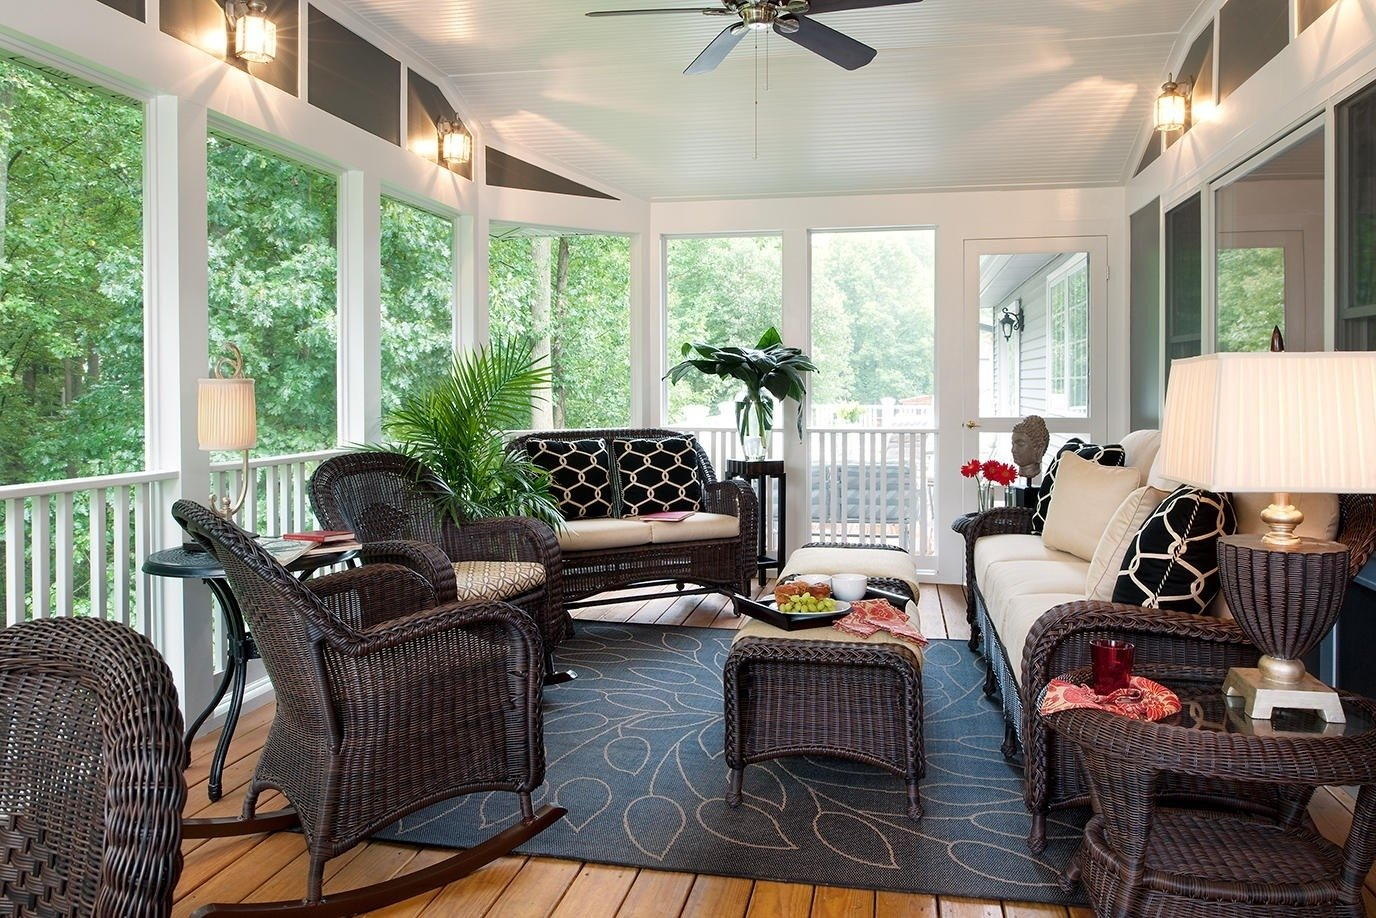 10 Trendy Ideas For Screened In Porches screen porch design ideas screened in porch decorating 1 2020